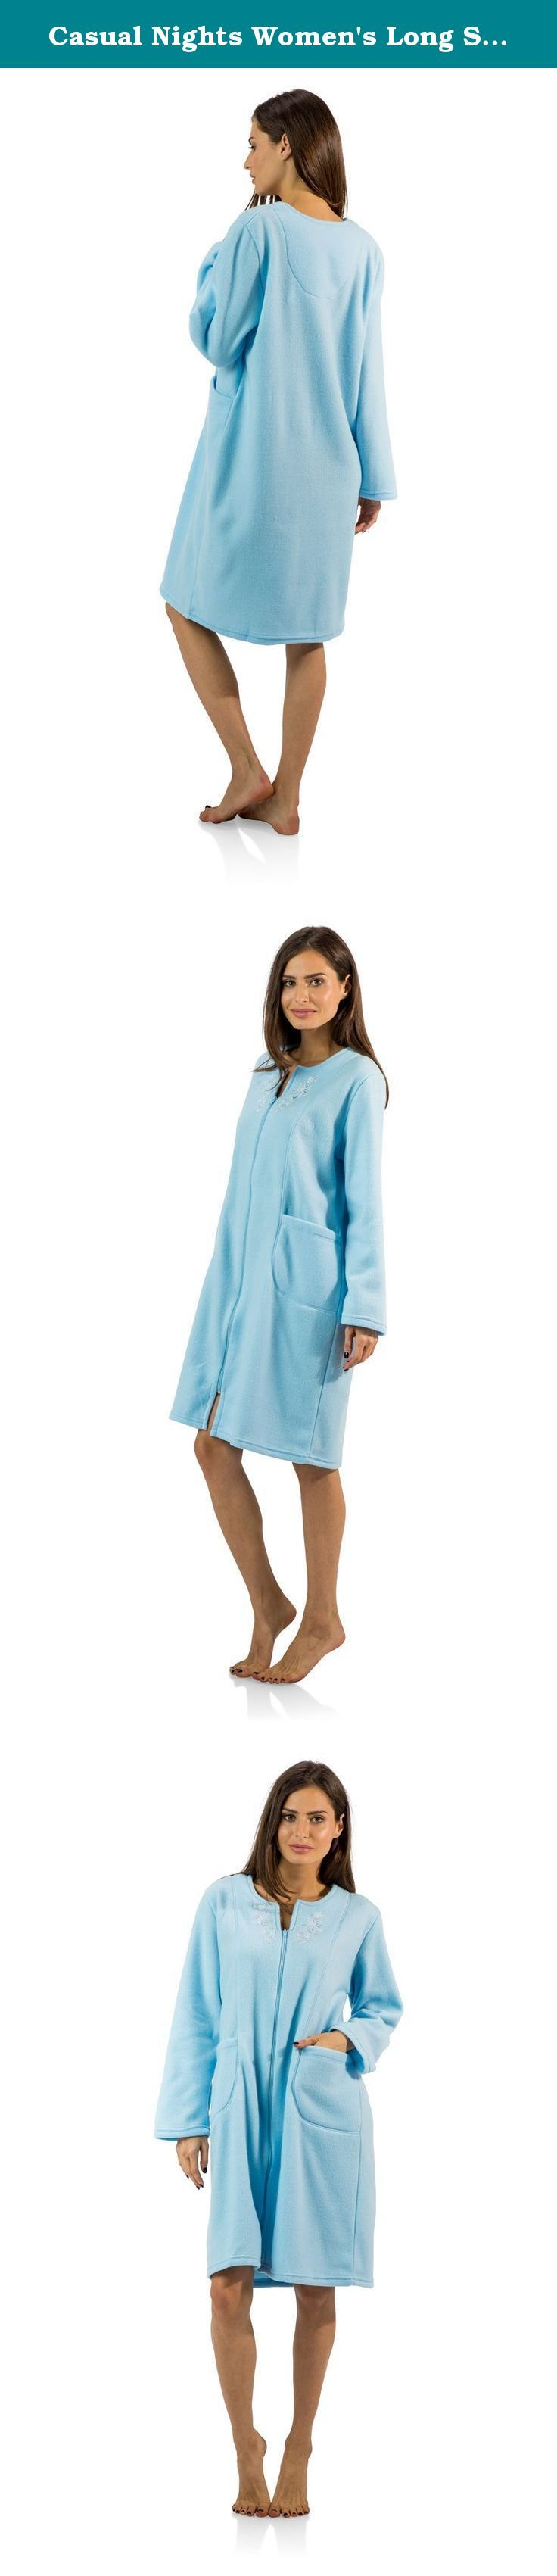 "Casual Nights Women's Long Sleeve Zip Up Front Short Fleece Robe - Blue - X-Large. This cozy warm Zipper Front Fleece Robe from Casual Nights, Exceptionally lightweight bathrobe made from poly fleece smooth to the touch fabric. Housecoat features; Long sleeves, stitching detail, flower embroidery appliques, front zip closure measures 28"" inches makes the shower robe easy to wear. Measures approx. 39"" from shoulder to hem. Perfect for spas, shower houses, dorms, pools, gyms, bathrooms..."